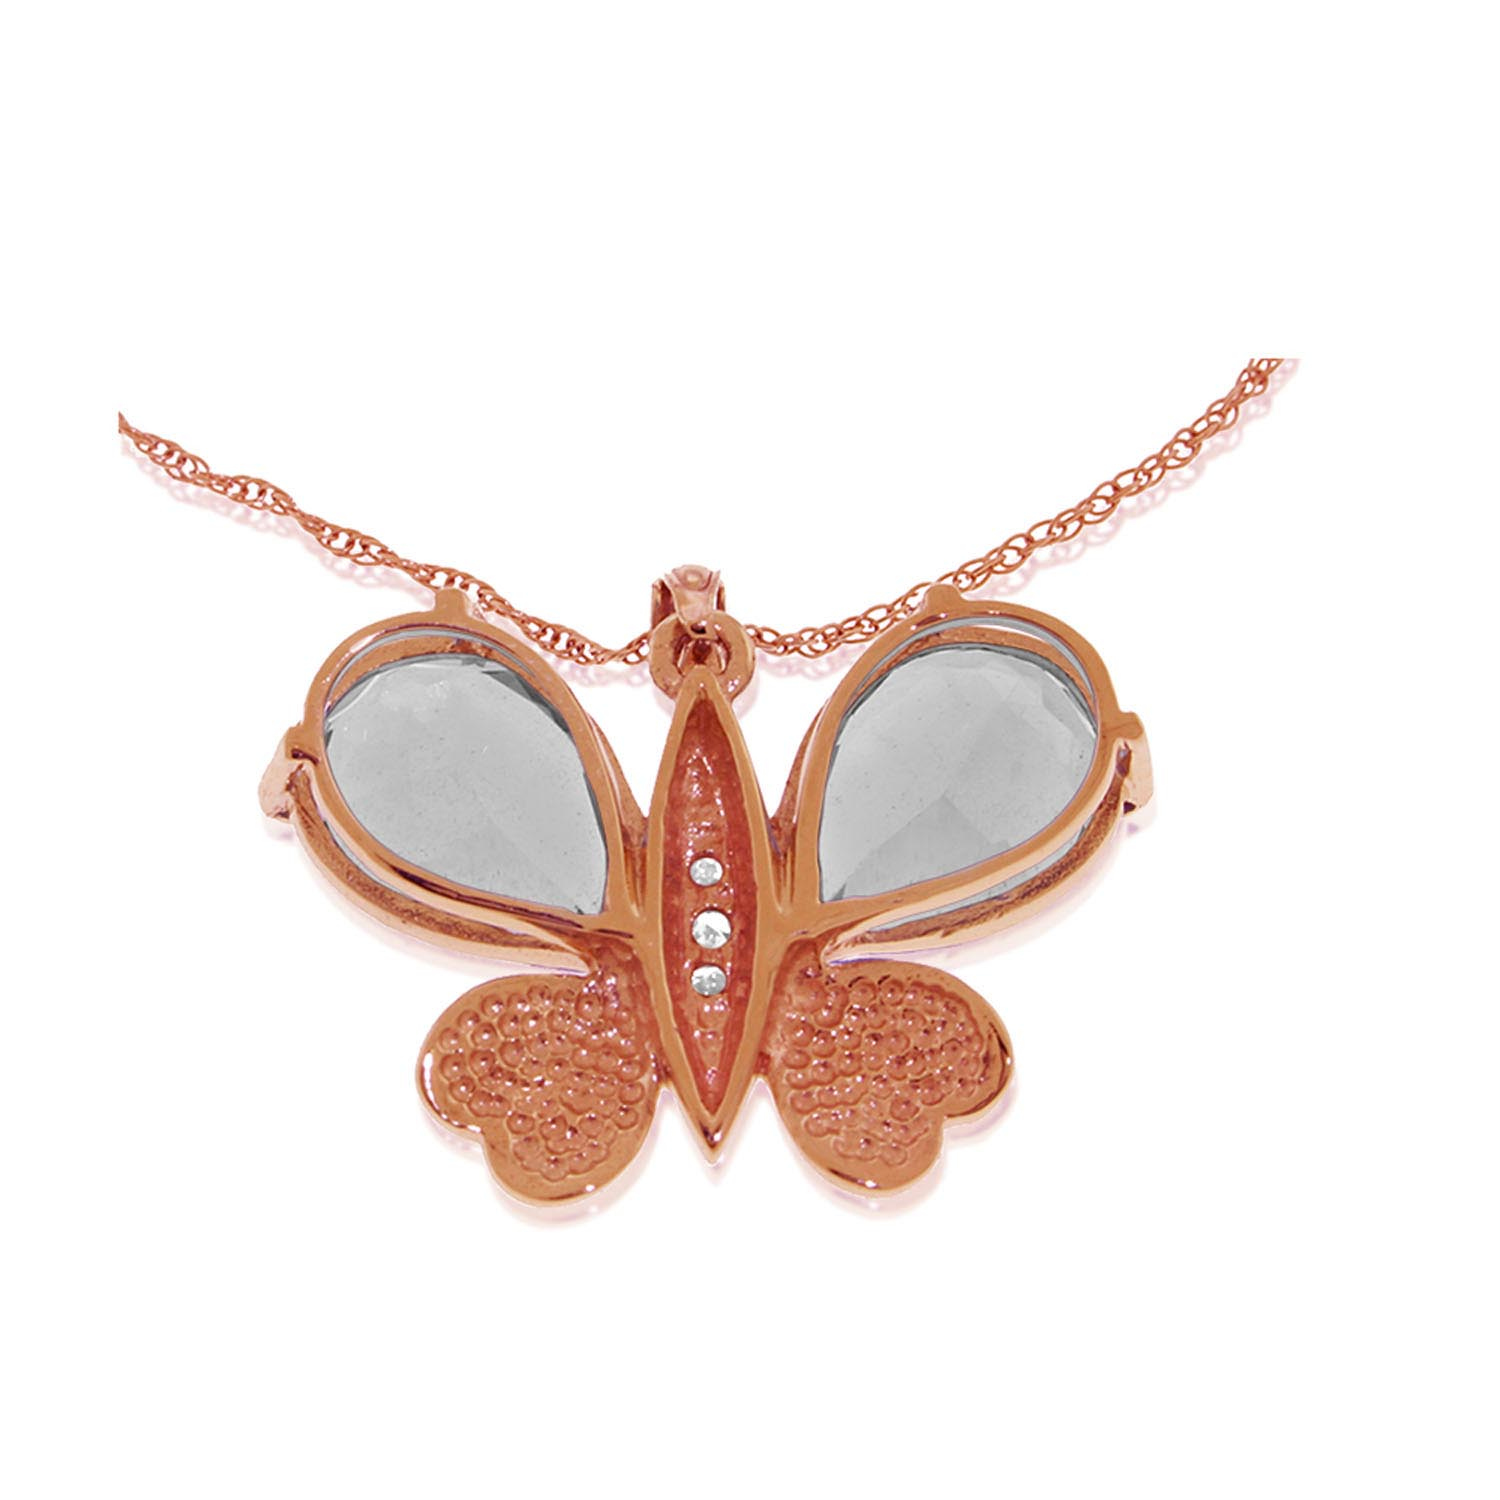 White Topaz and Diamond Butterfly Pendant Necklace 11.0ctw in 14K Rose Gold